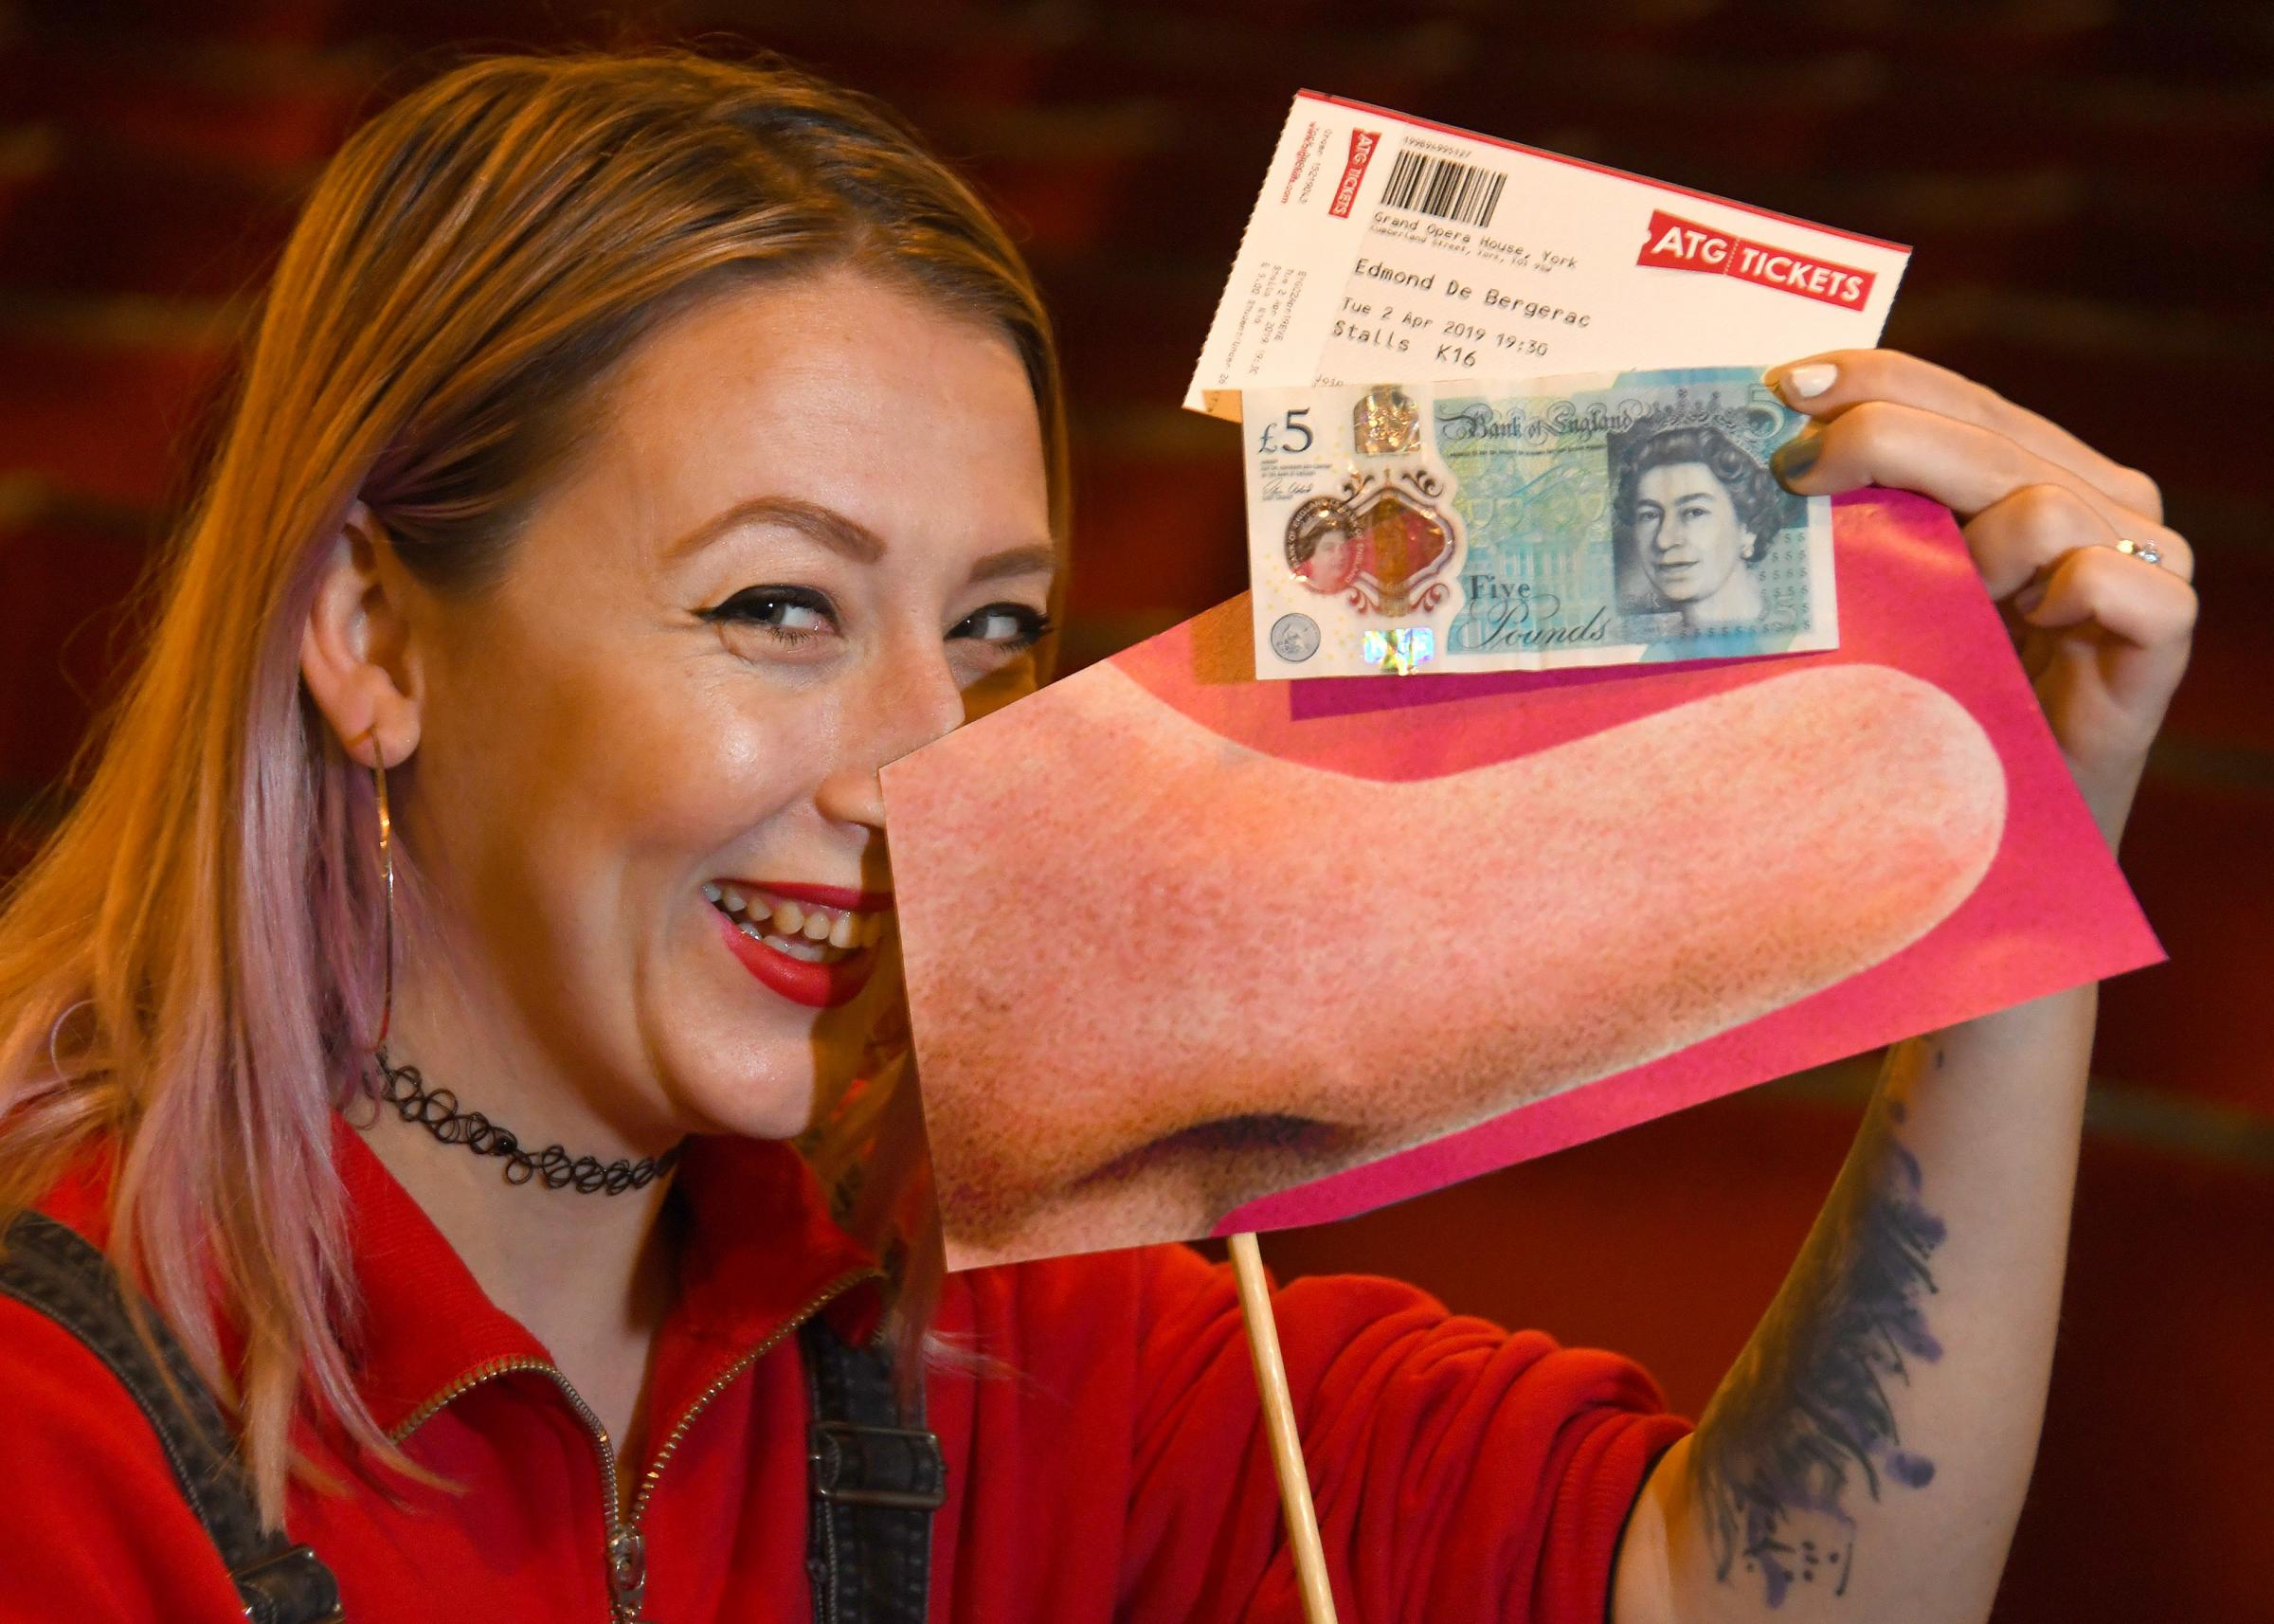 Deputy box office manager Beth Scott with the notorious Bergerac big nose and special £5 tickets for Edmond de Bergerac at the Grand Opera House, York. Picture: David Harrison